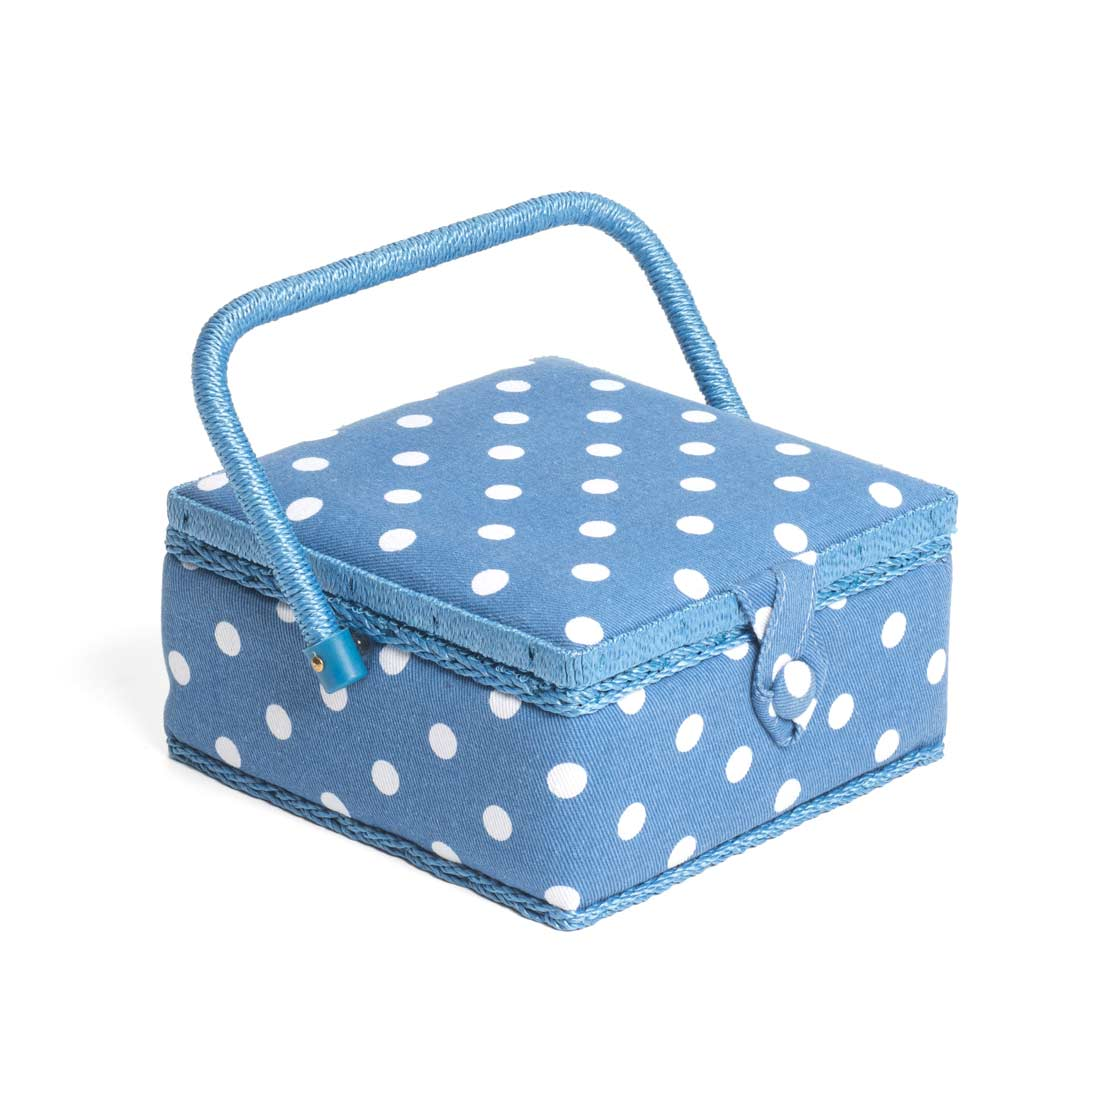 Denim Spot Small Sewing Basket